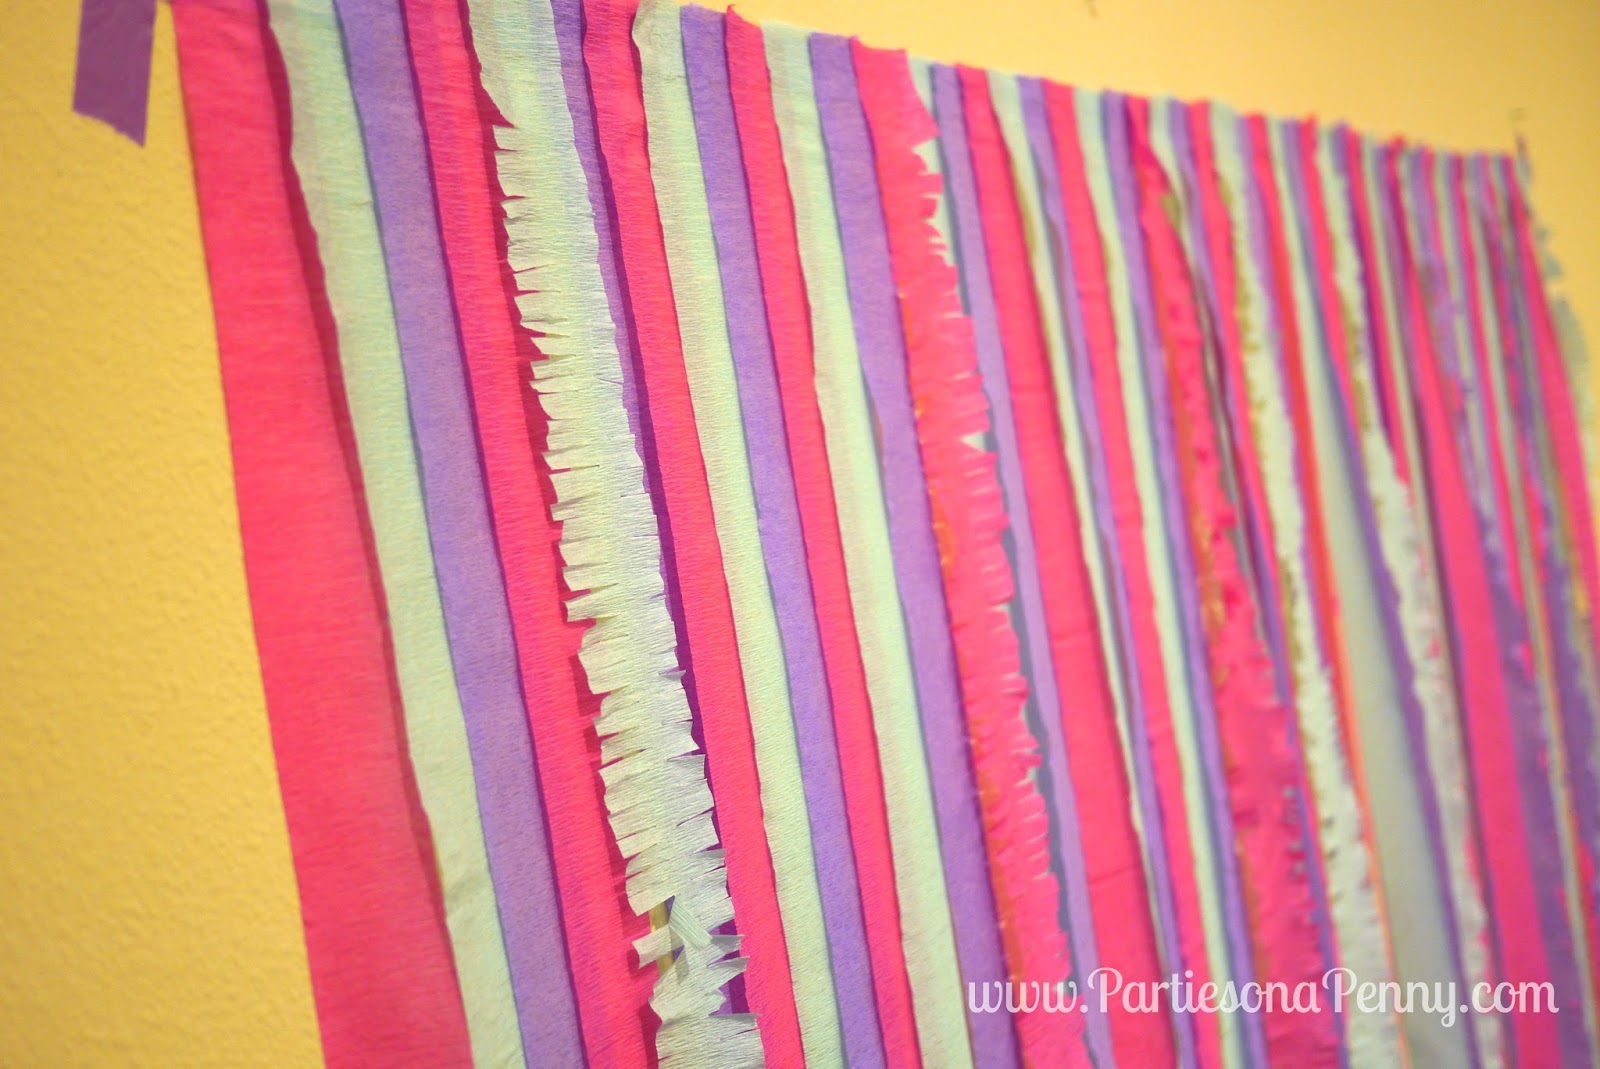 Parties on a penny easy diy streamer backdrop easy diy streamer backdrop solutioingenieria Choice Image